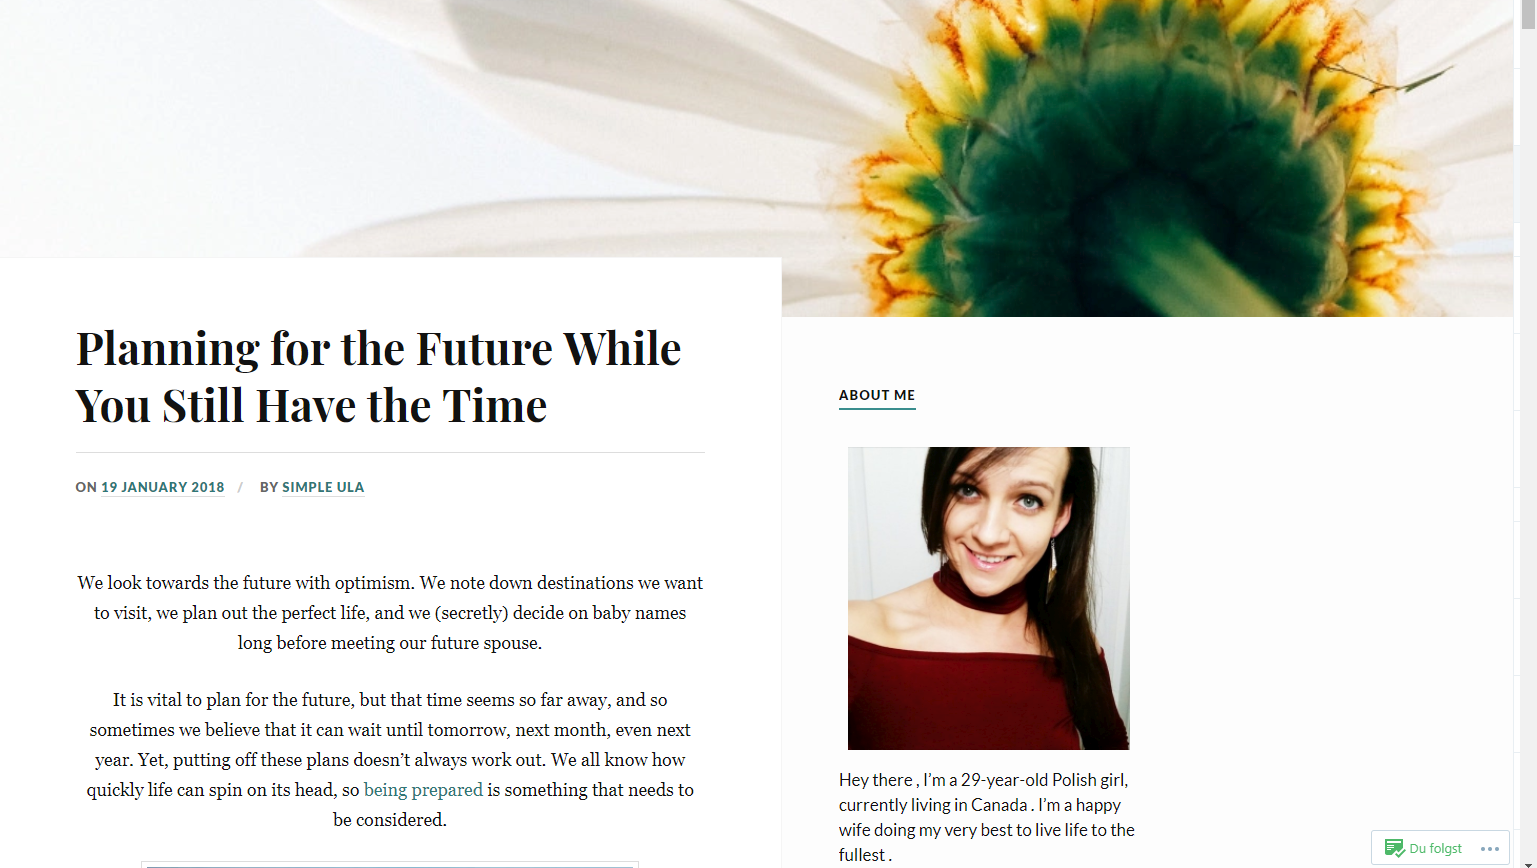 Planning for the Future while you still have the Time